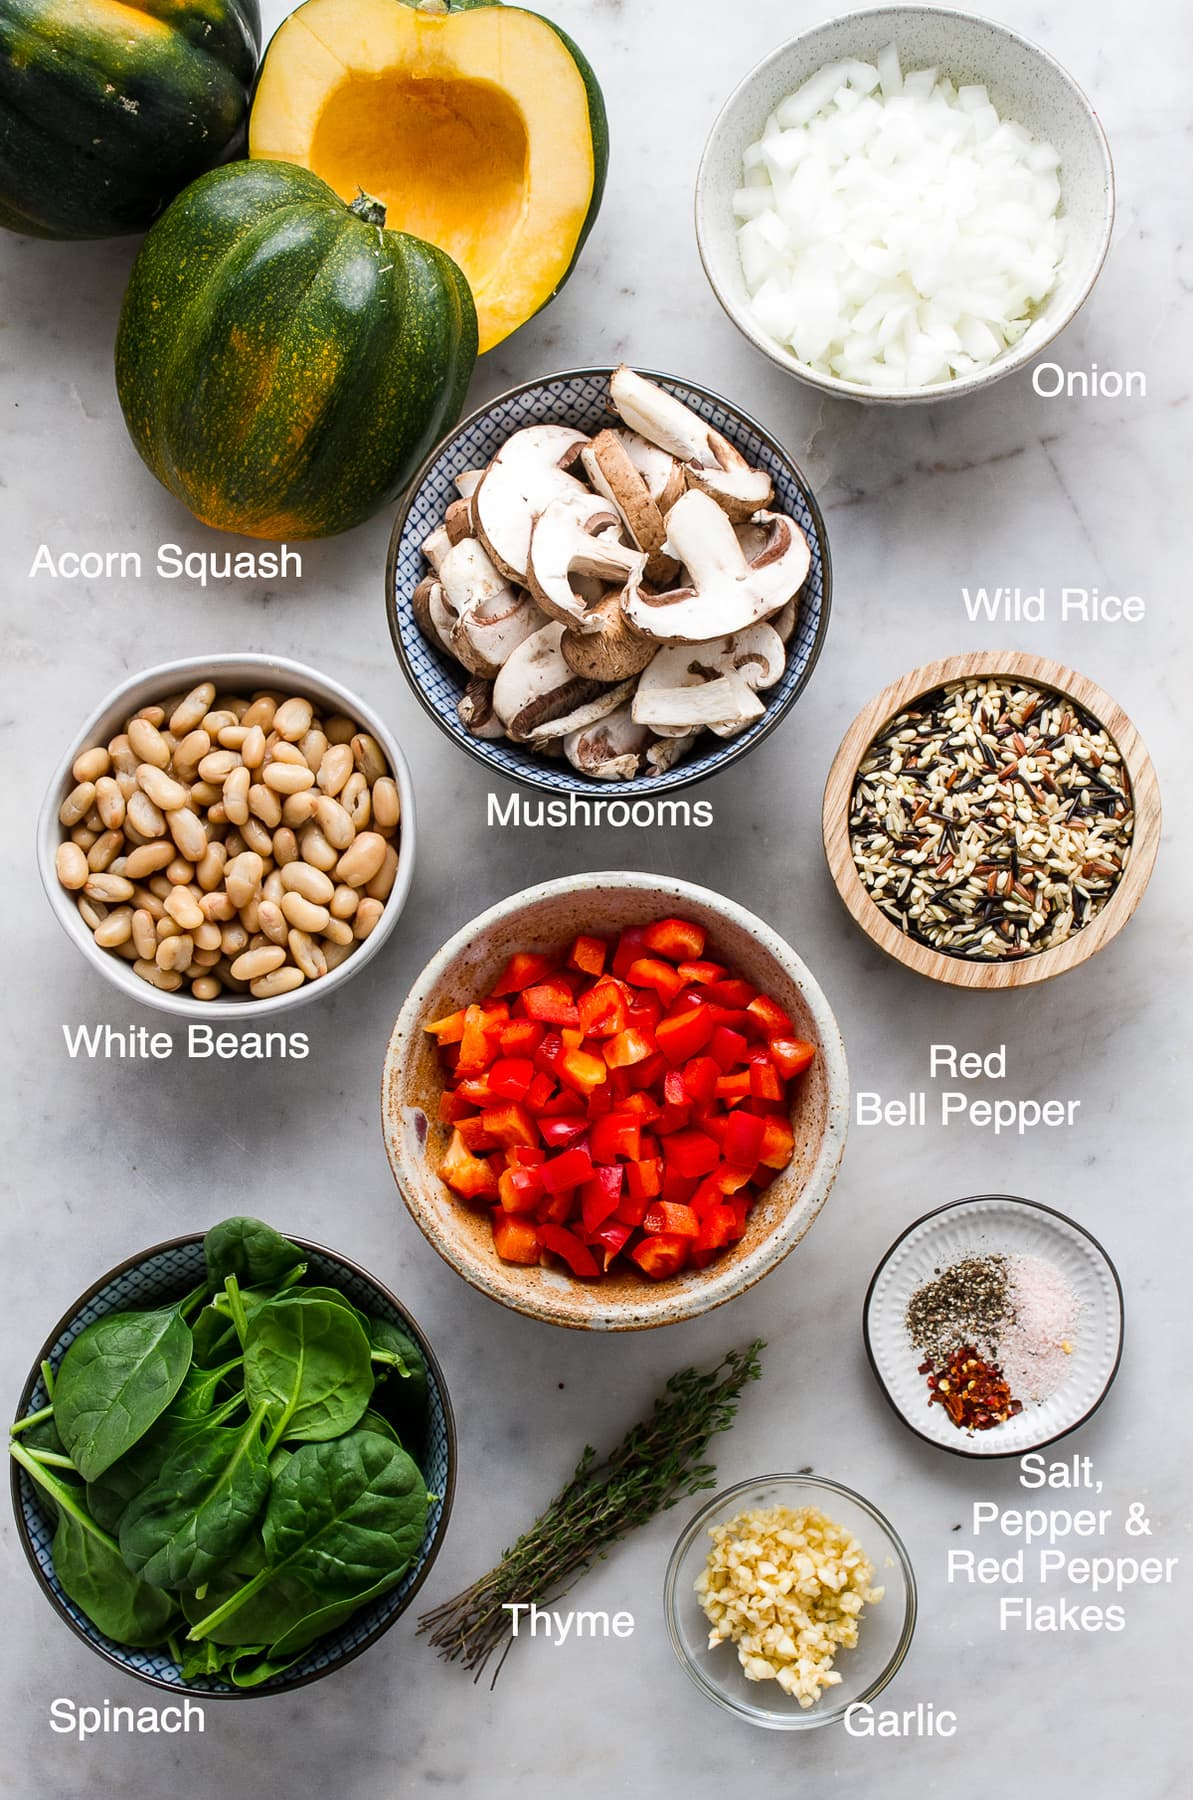 top down view of ingredients needed to make acorn squash and wild rice medley.